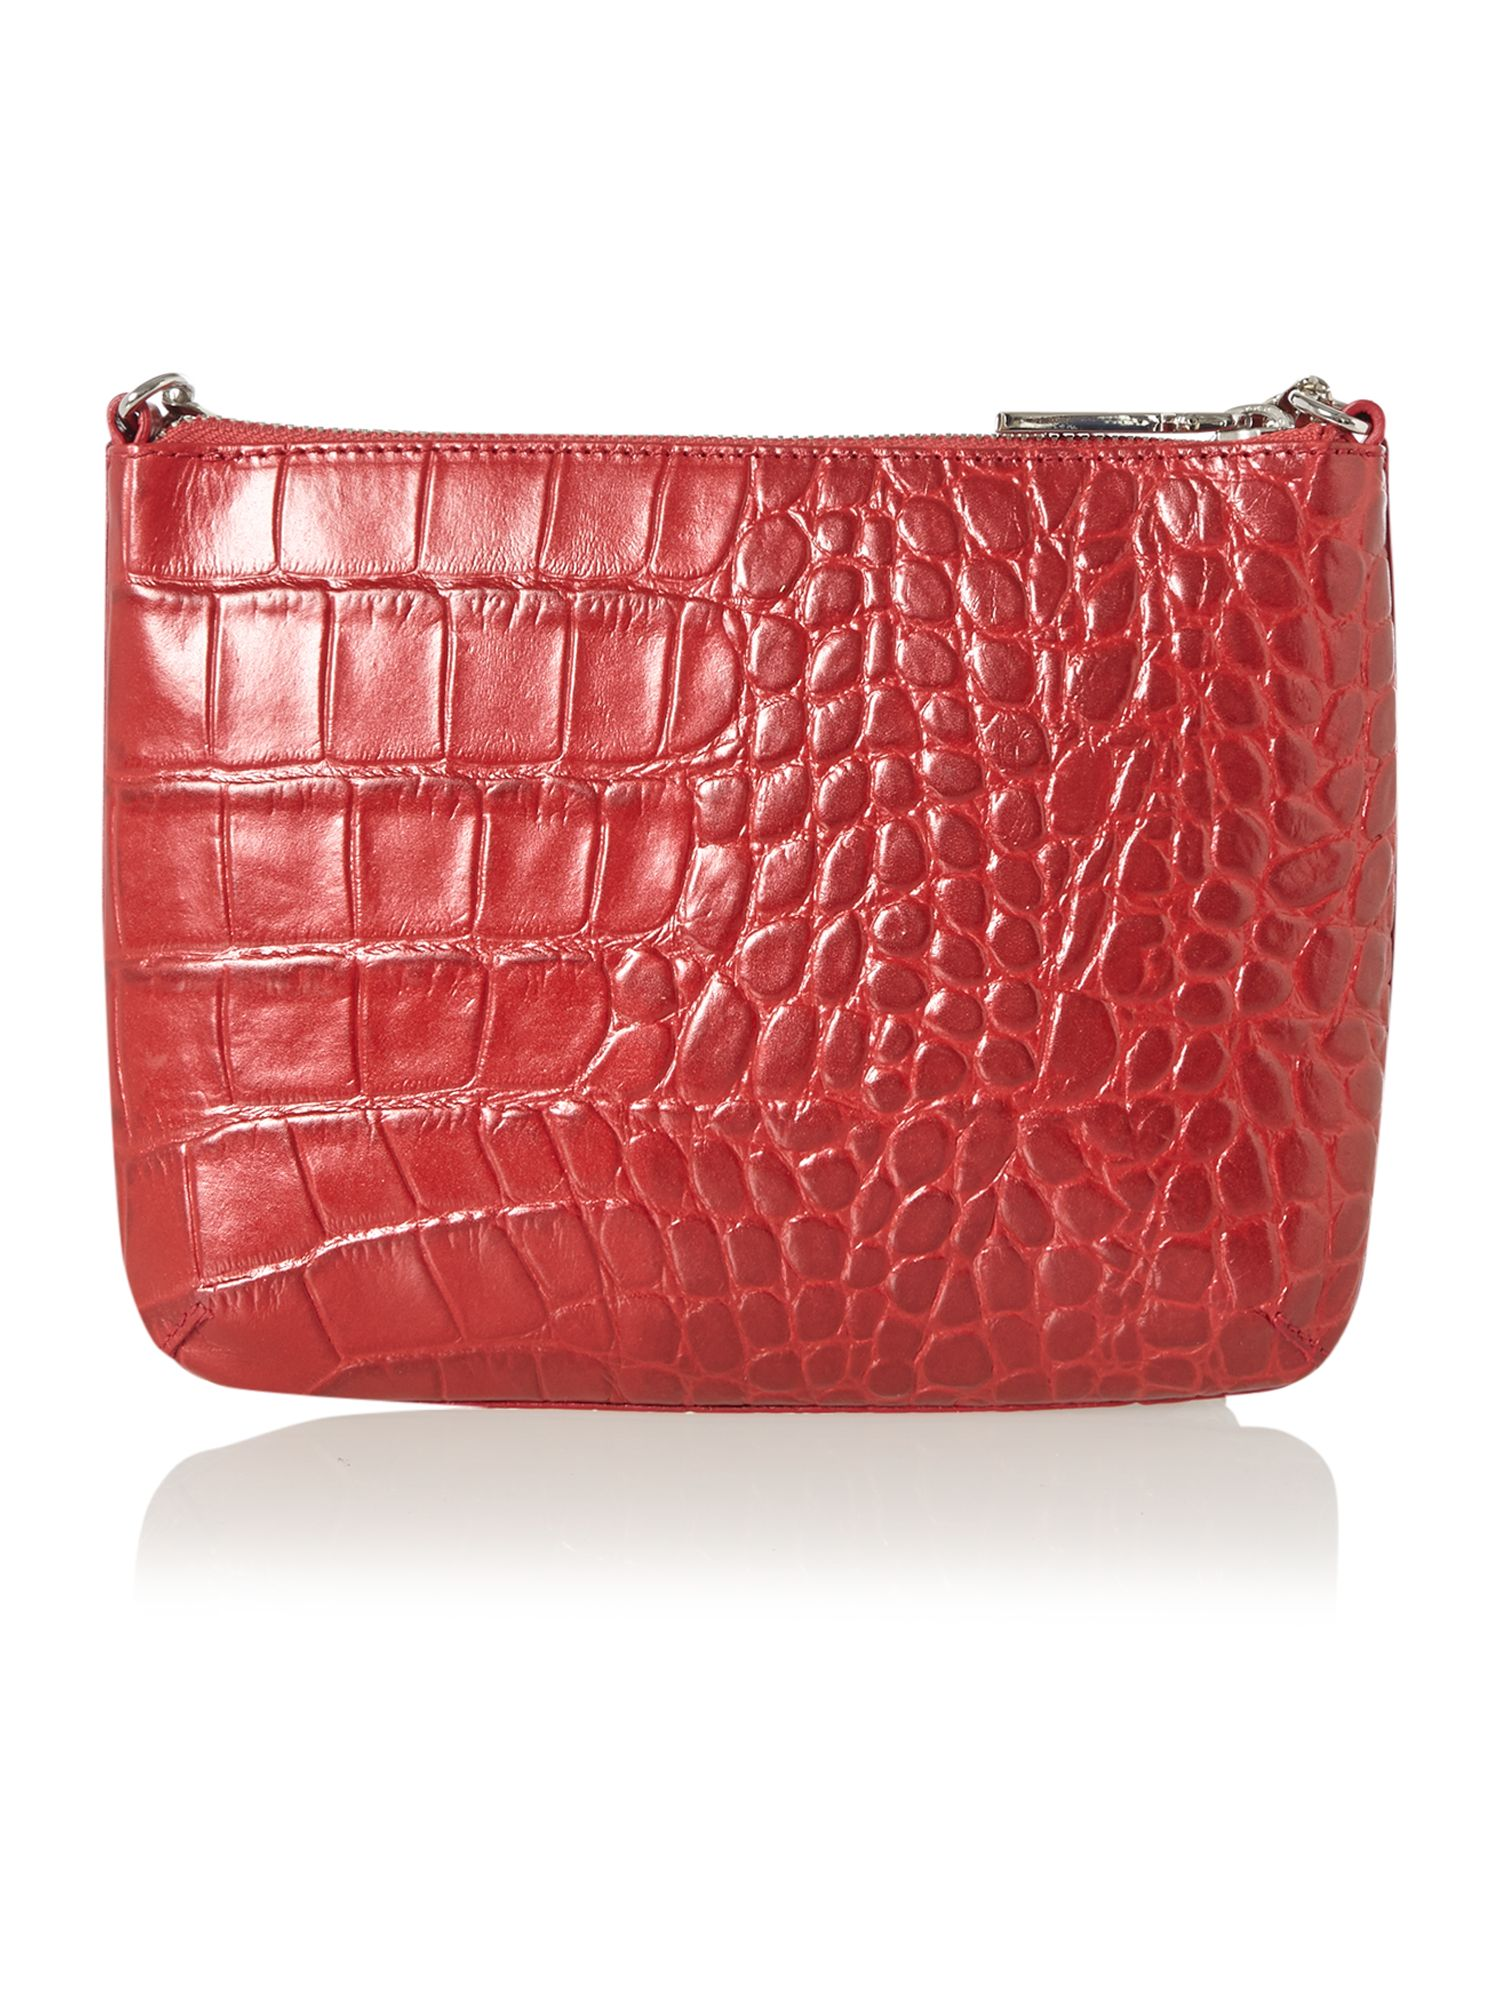 Twiggy pink croc cross body bag